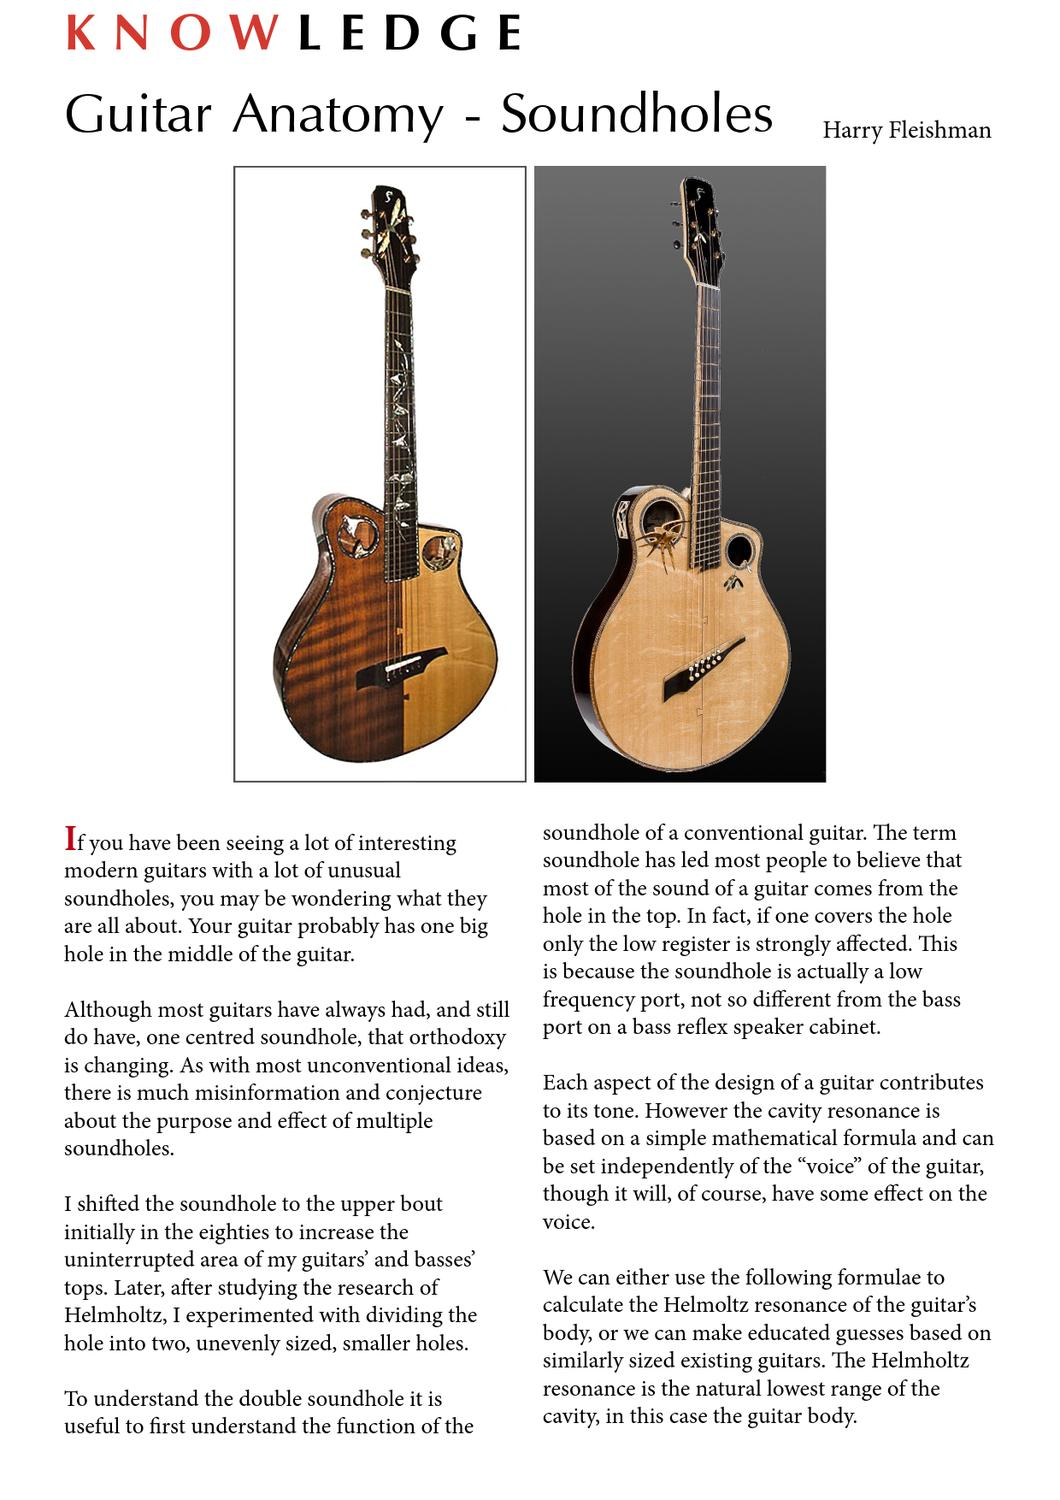 Guitarbench Magazine Issue 4 Guitar Anatomy- Soundholes article by ...